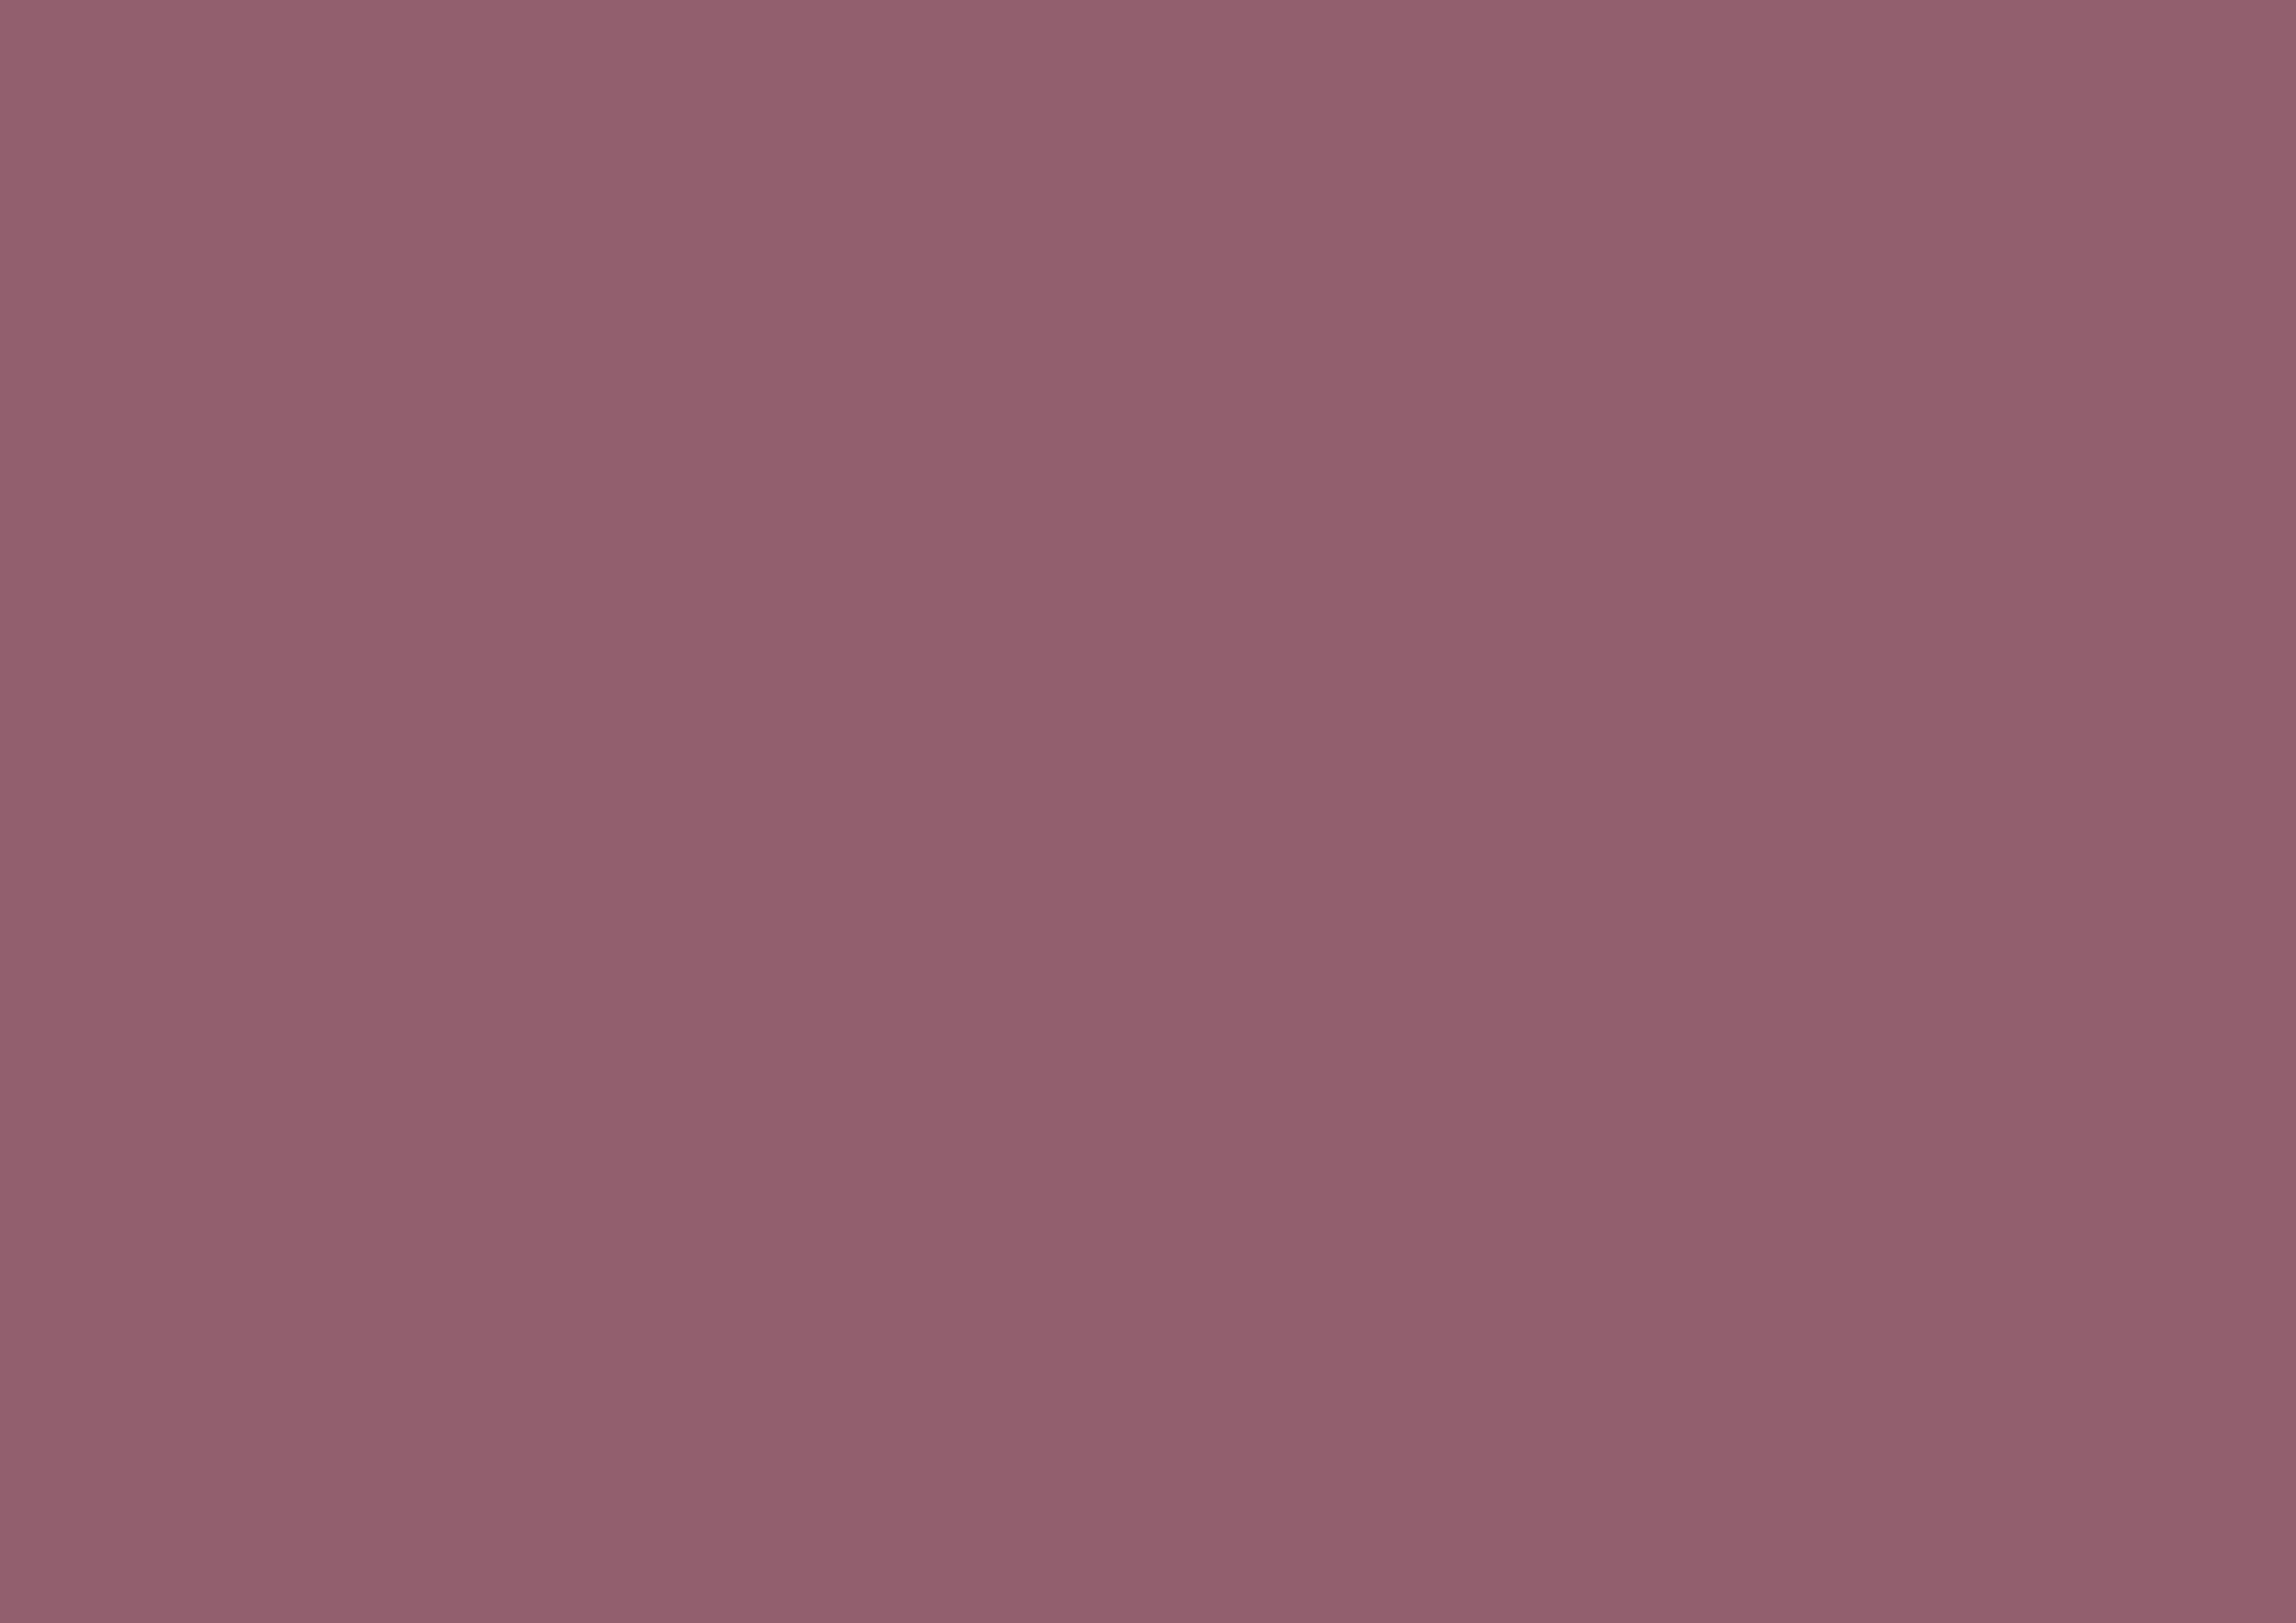 3508x2480 Raspberry Glace Solid Color Background